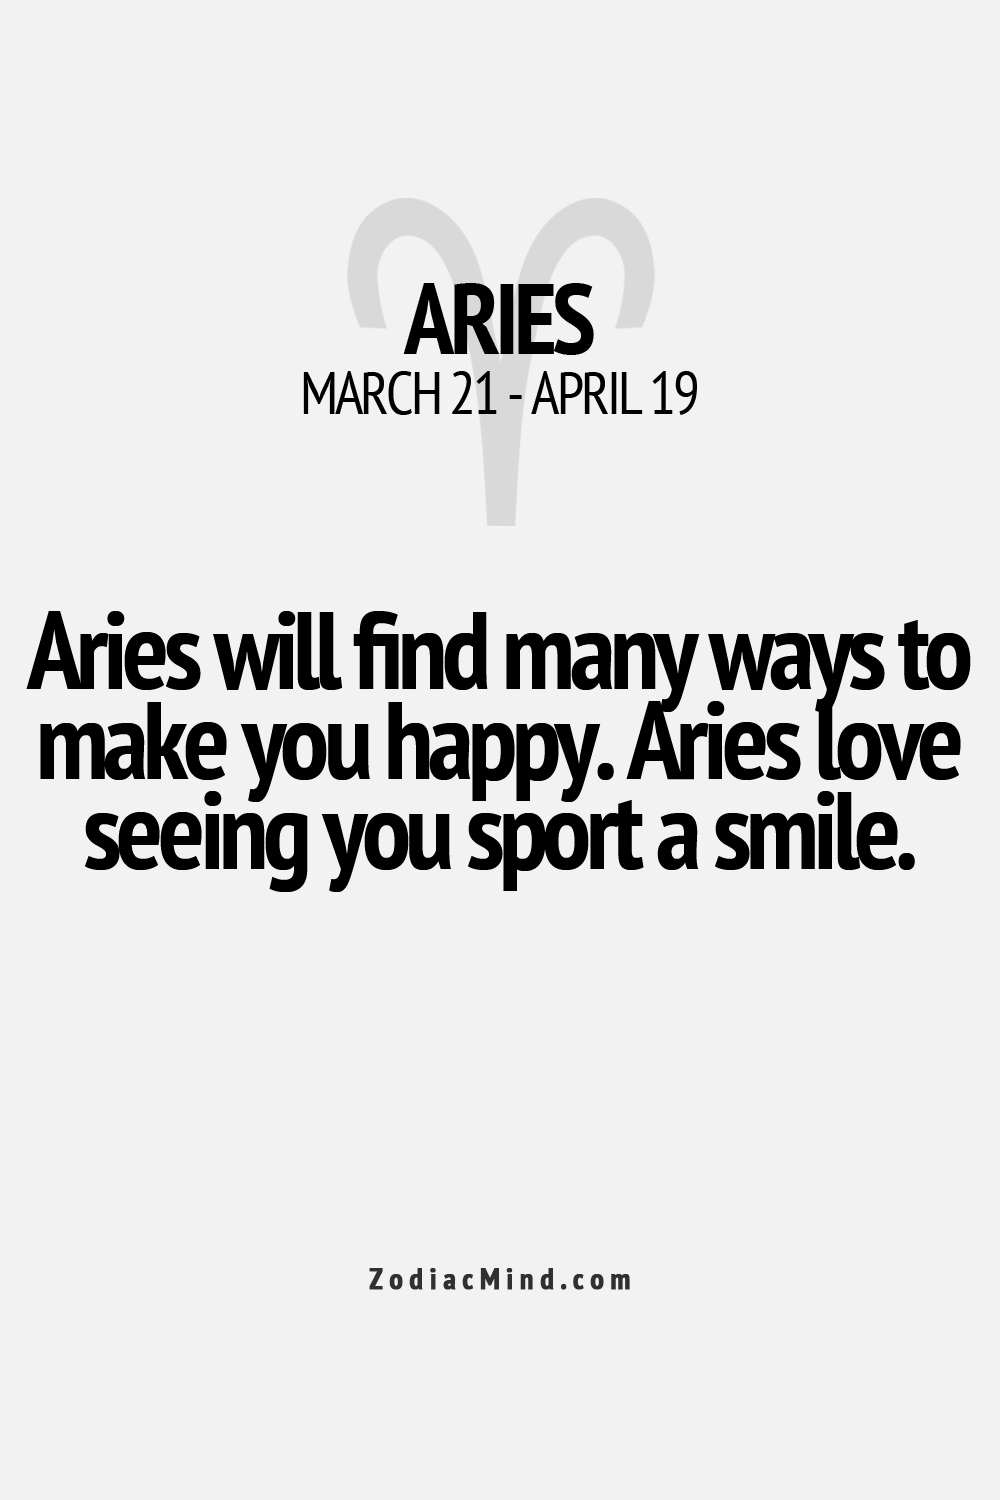 Aries will find many ways to make you happy. Aries love seeing you sport a smile.